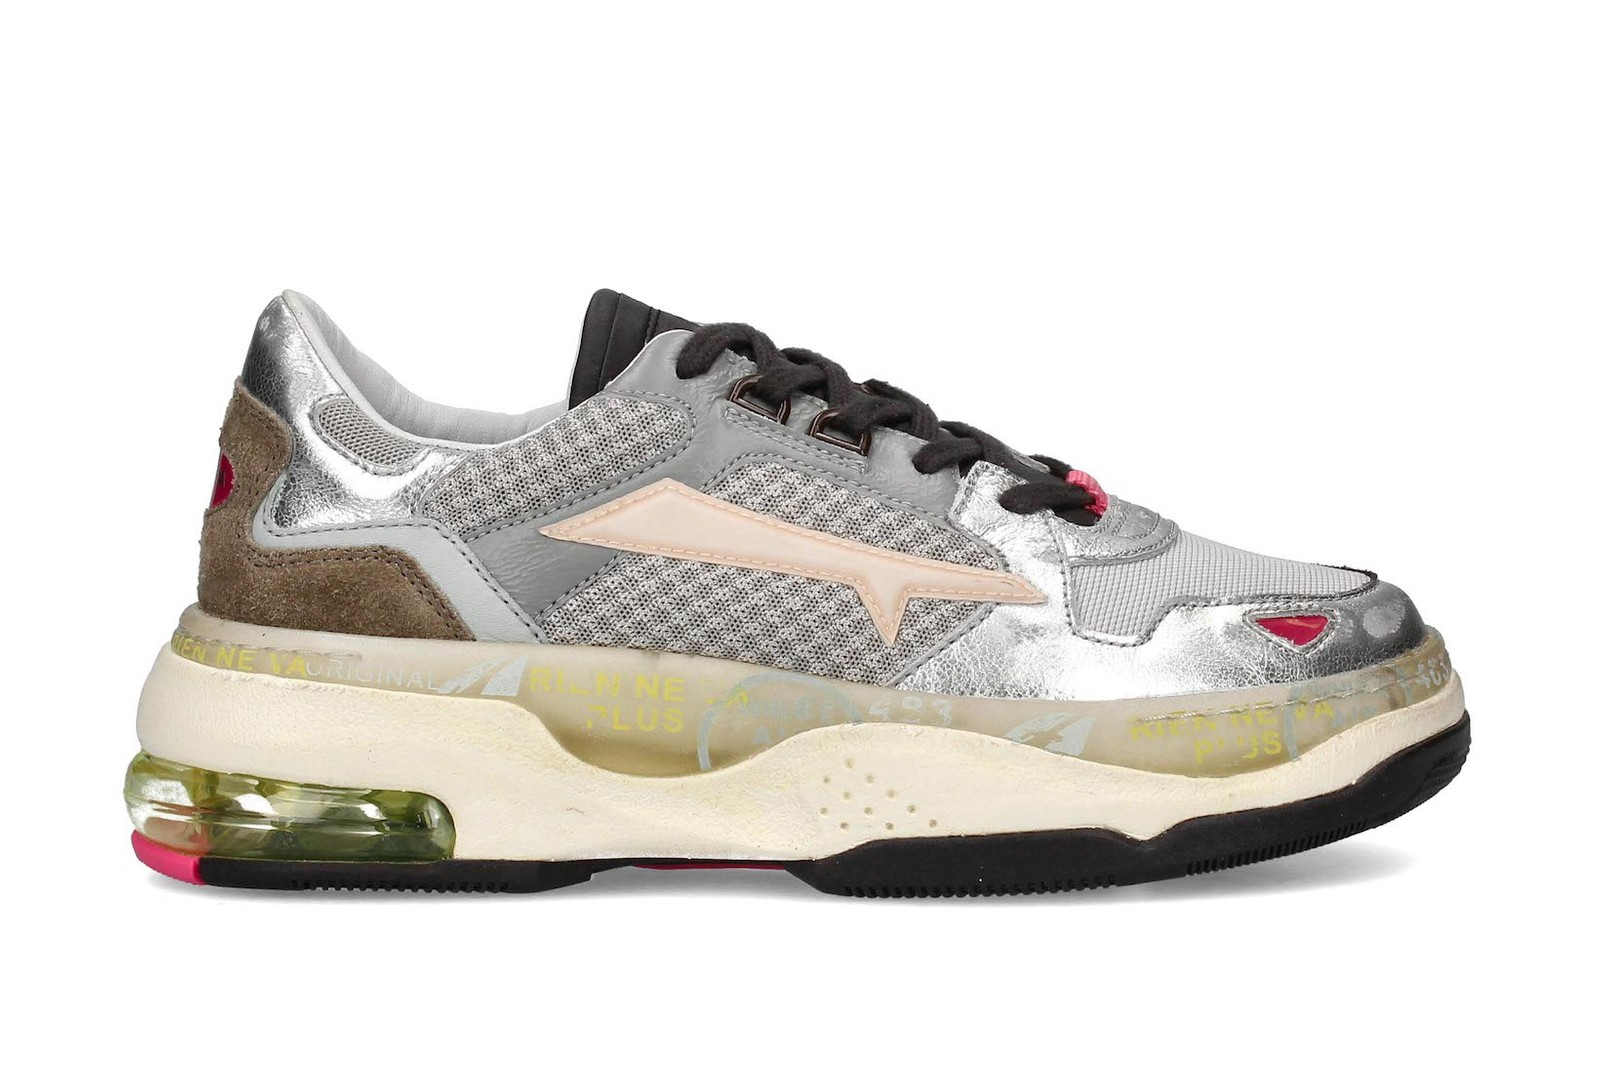 premiata ss20 sizey collection footwear sneakers drake sharky bold colour campaign italian luxury